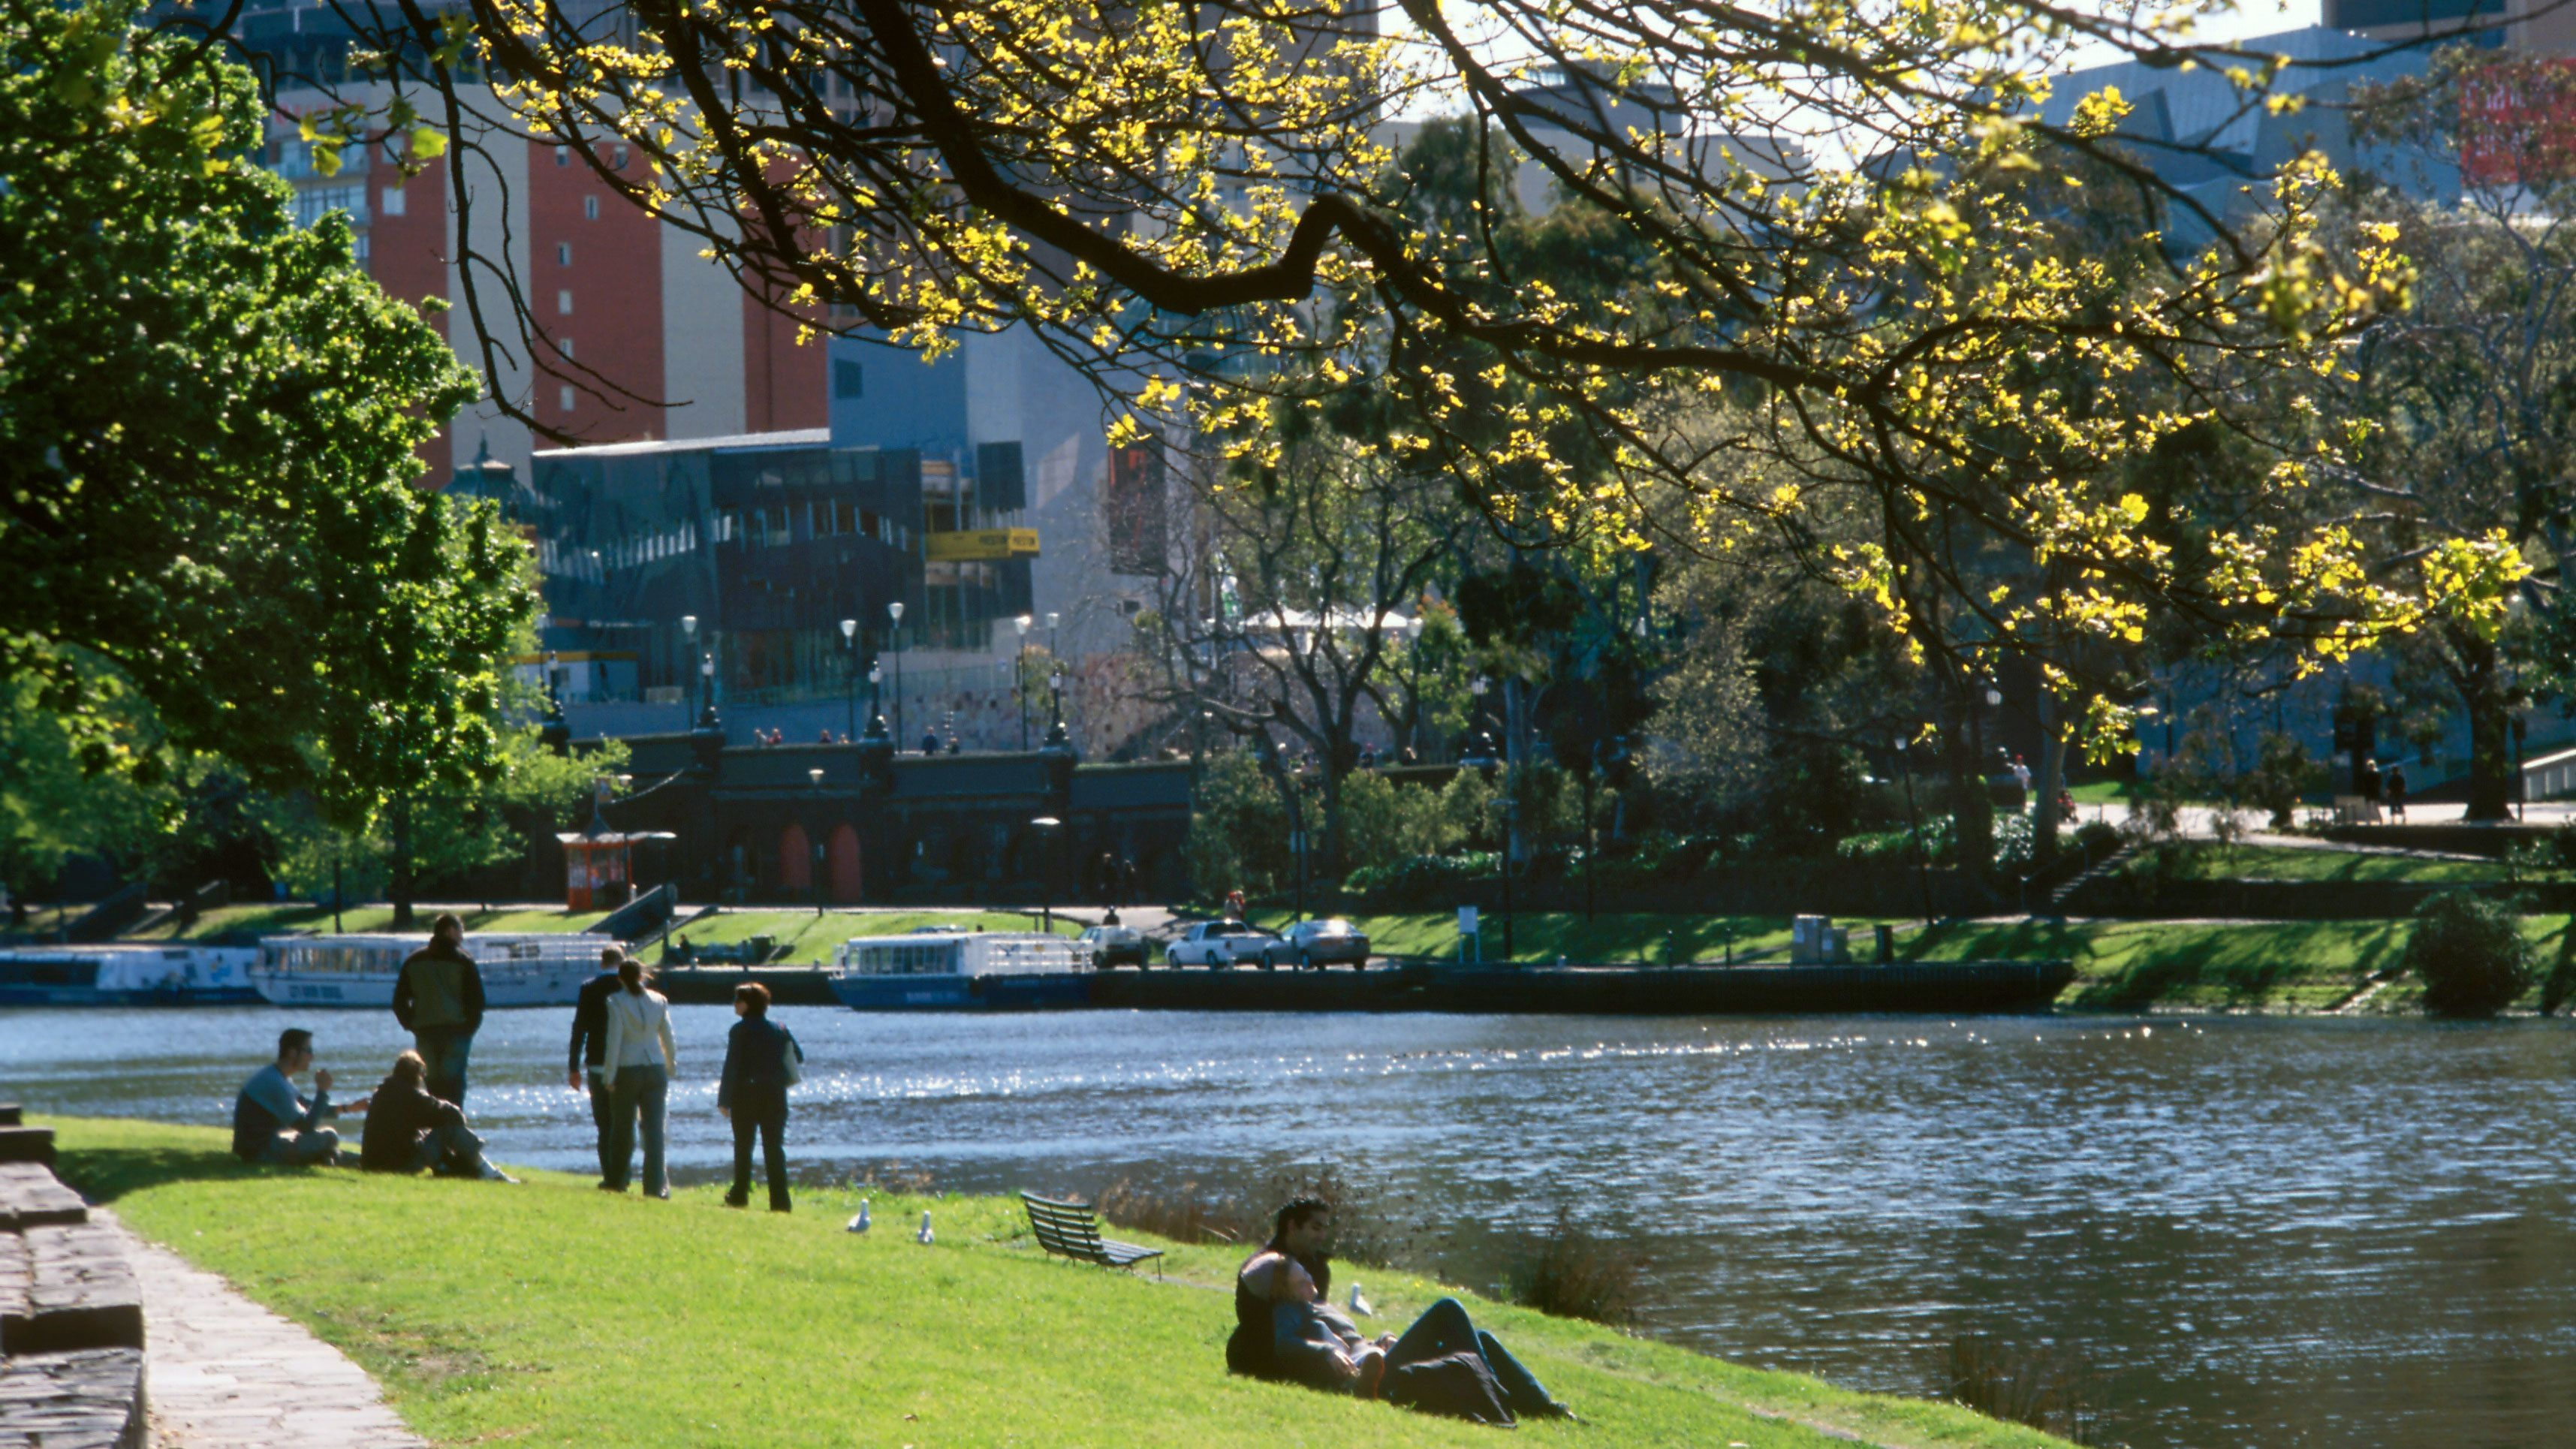 People relax on the grass along the bank of the Yarra River in Melbourne